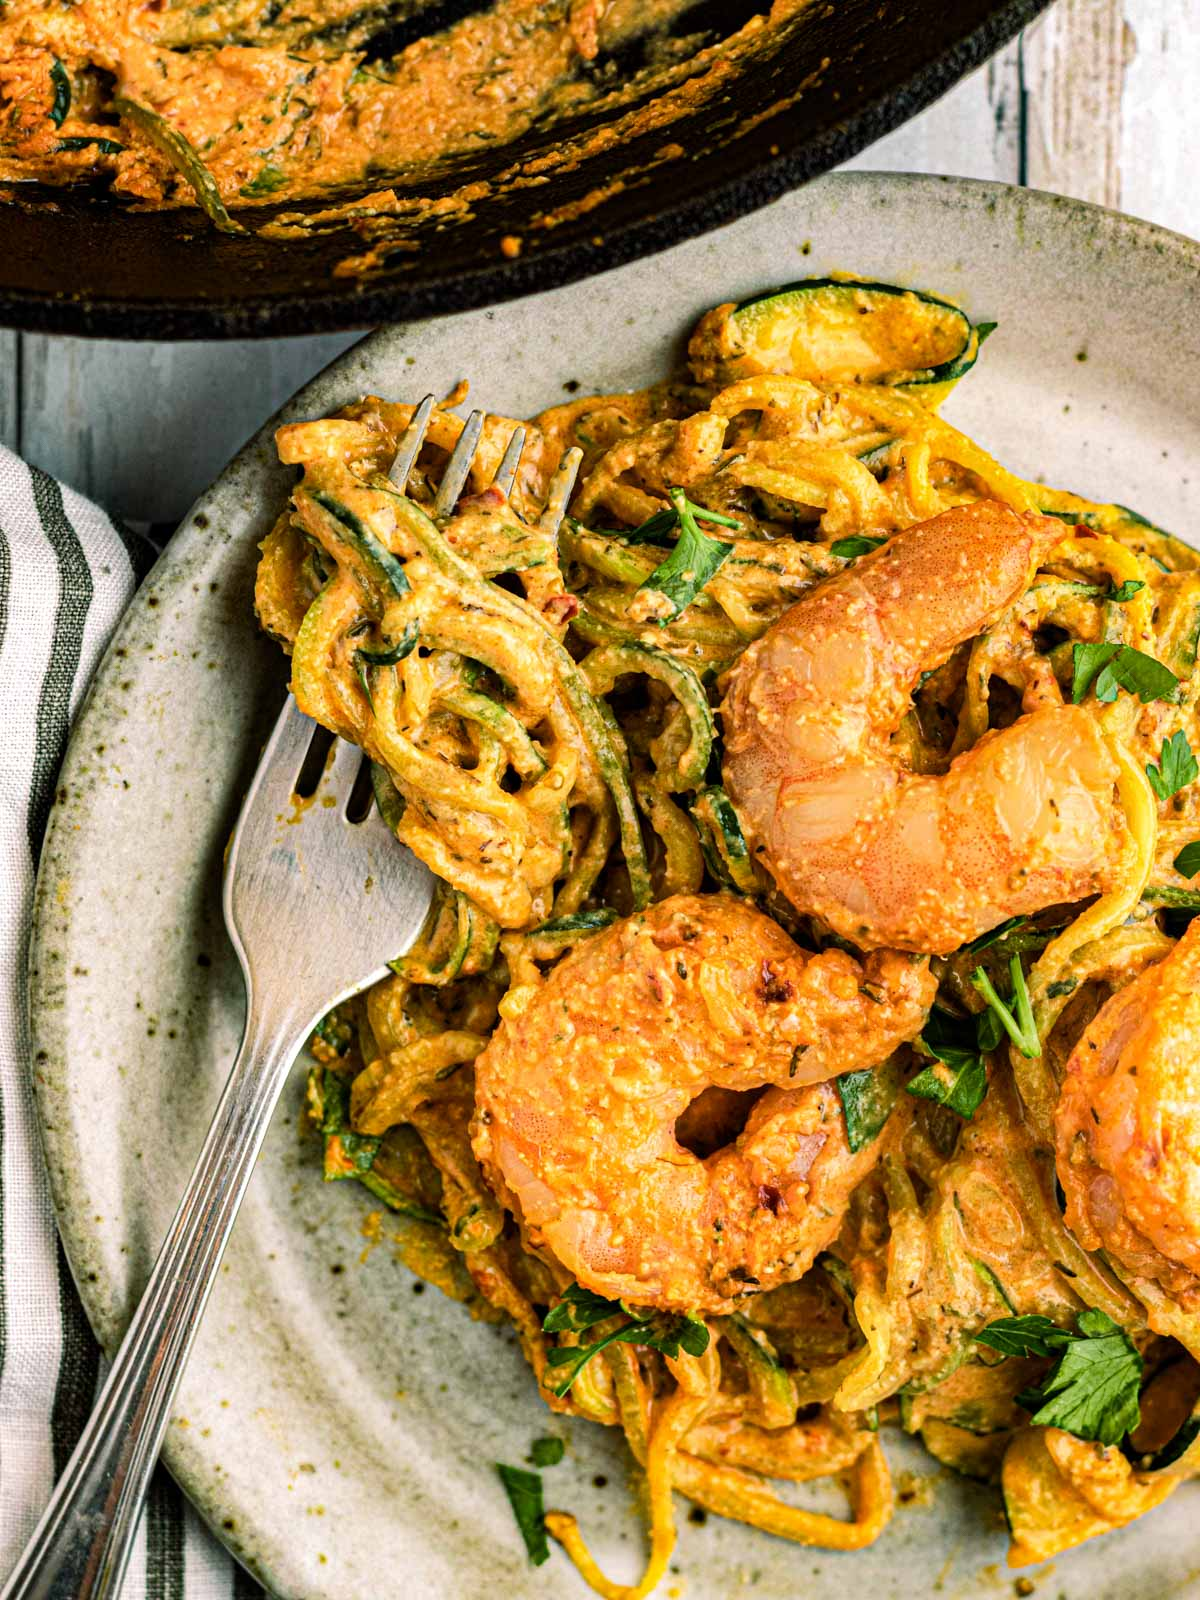 shrimp and zoodles in a dish with a fork